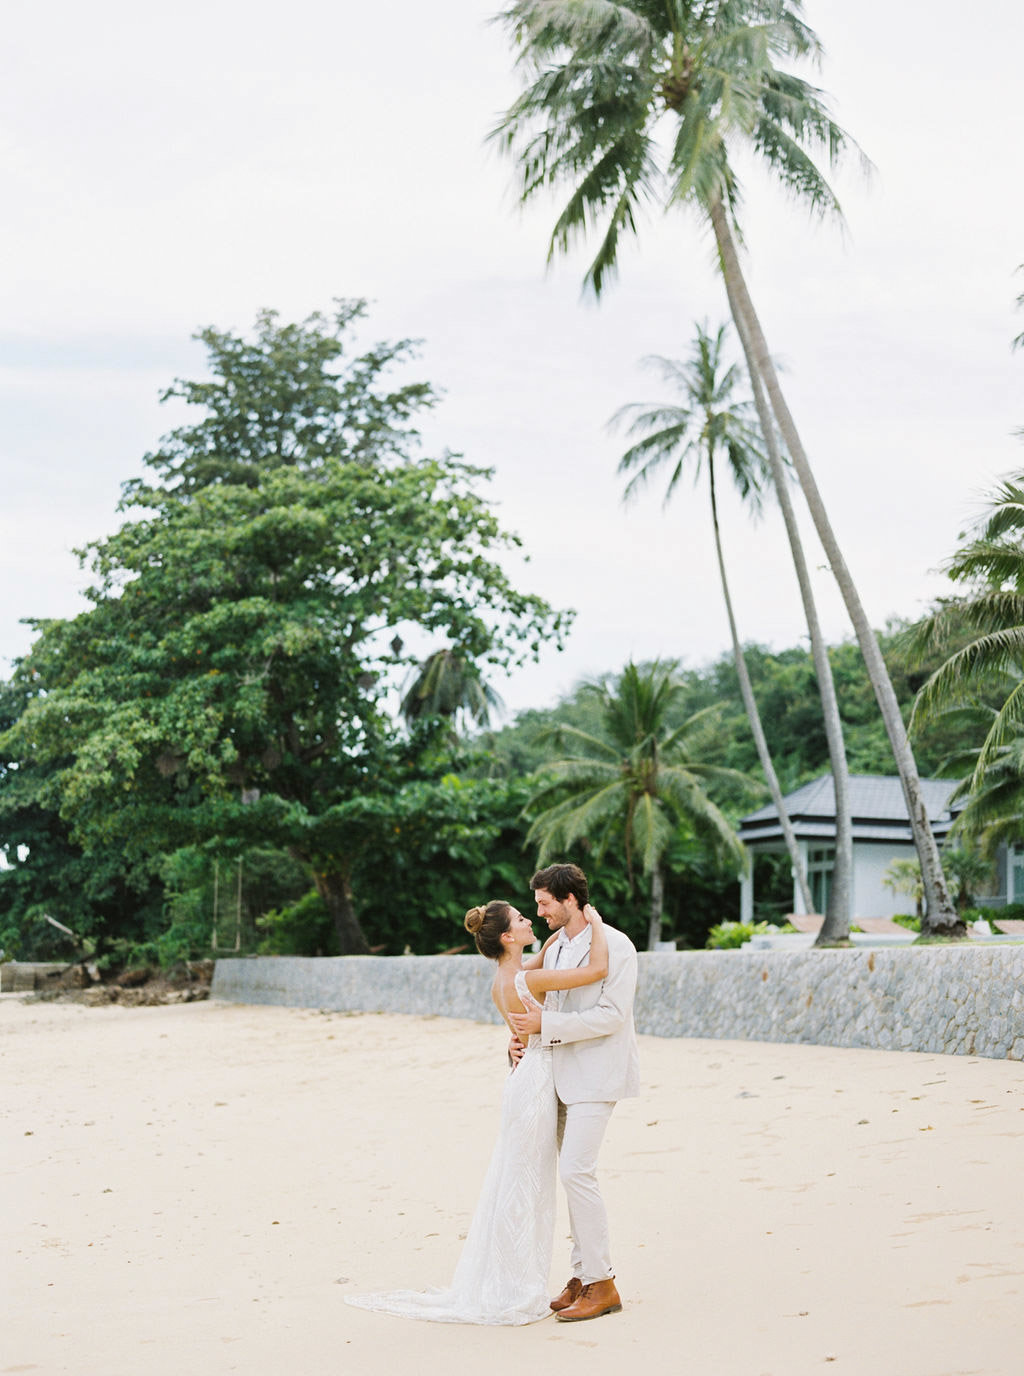 Thailand Wedding Venues Destination Koh Yao Noi By Fine Art Film Wedding Photographer Sheri McMahon-00049